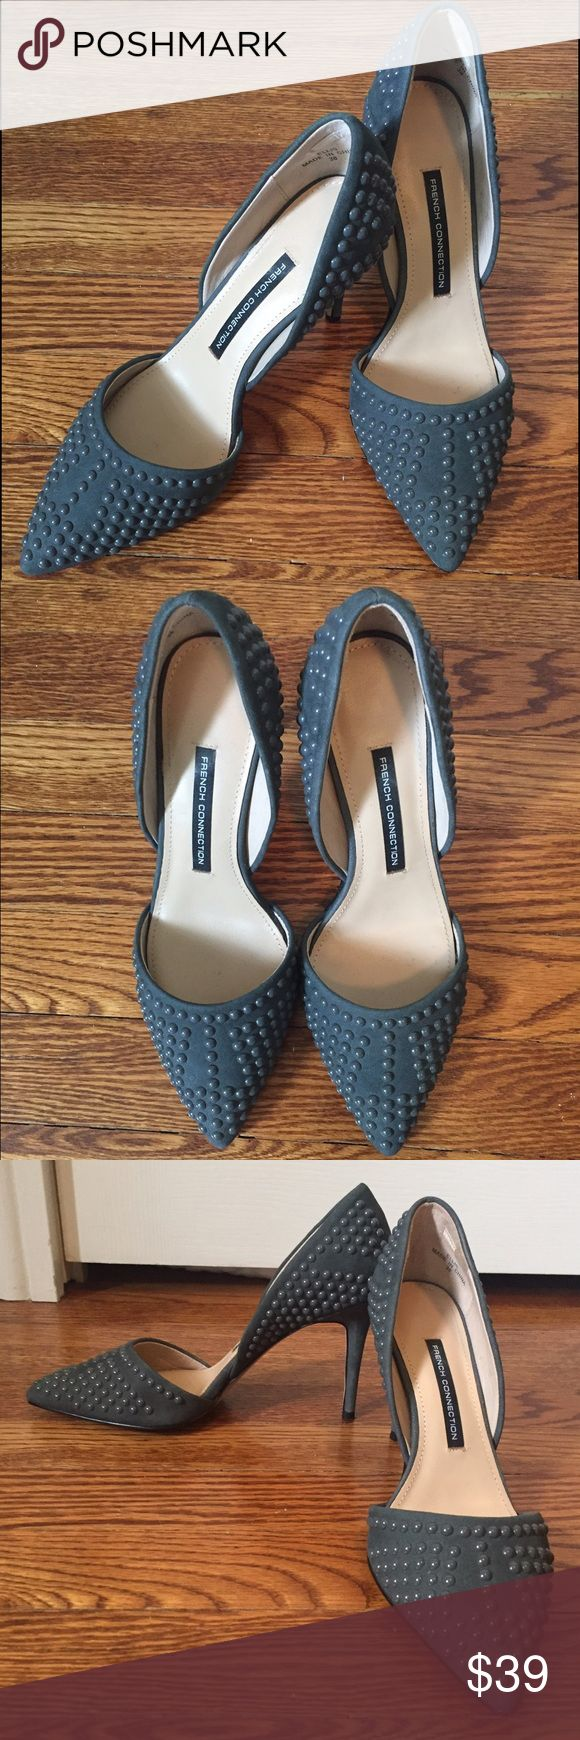 French Connection Ellis gray studded pumps Beautiful gray pumps with studs.  Can be worn with a dress or jeans.  Have only been worn 1x. French Connection Shoes Heels